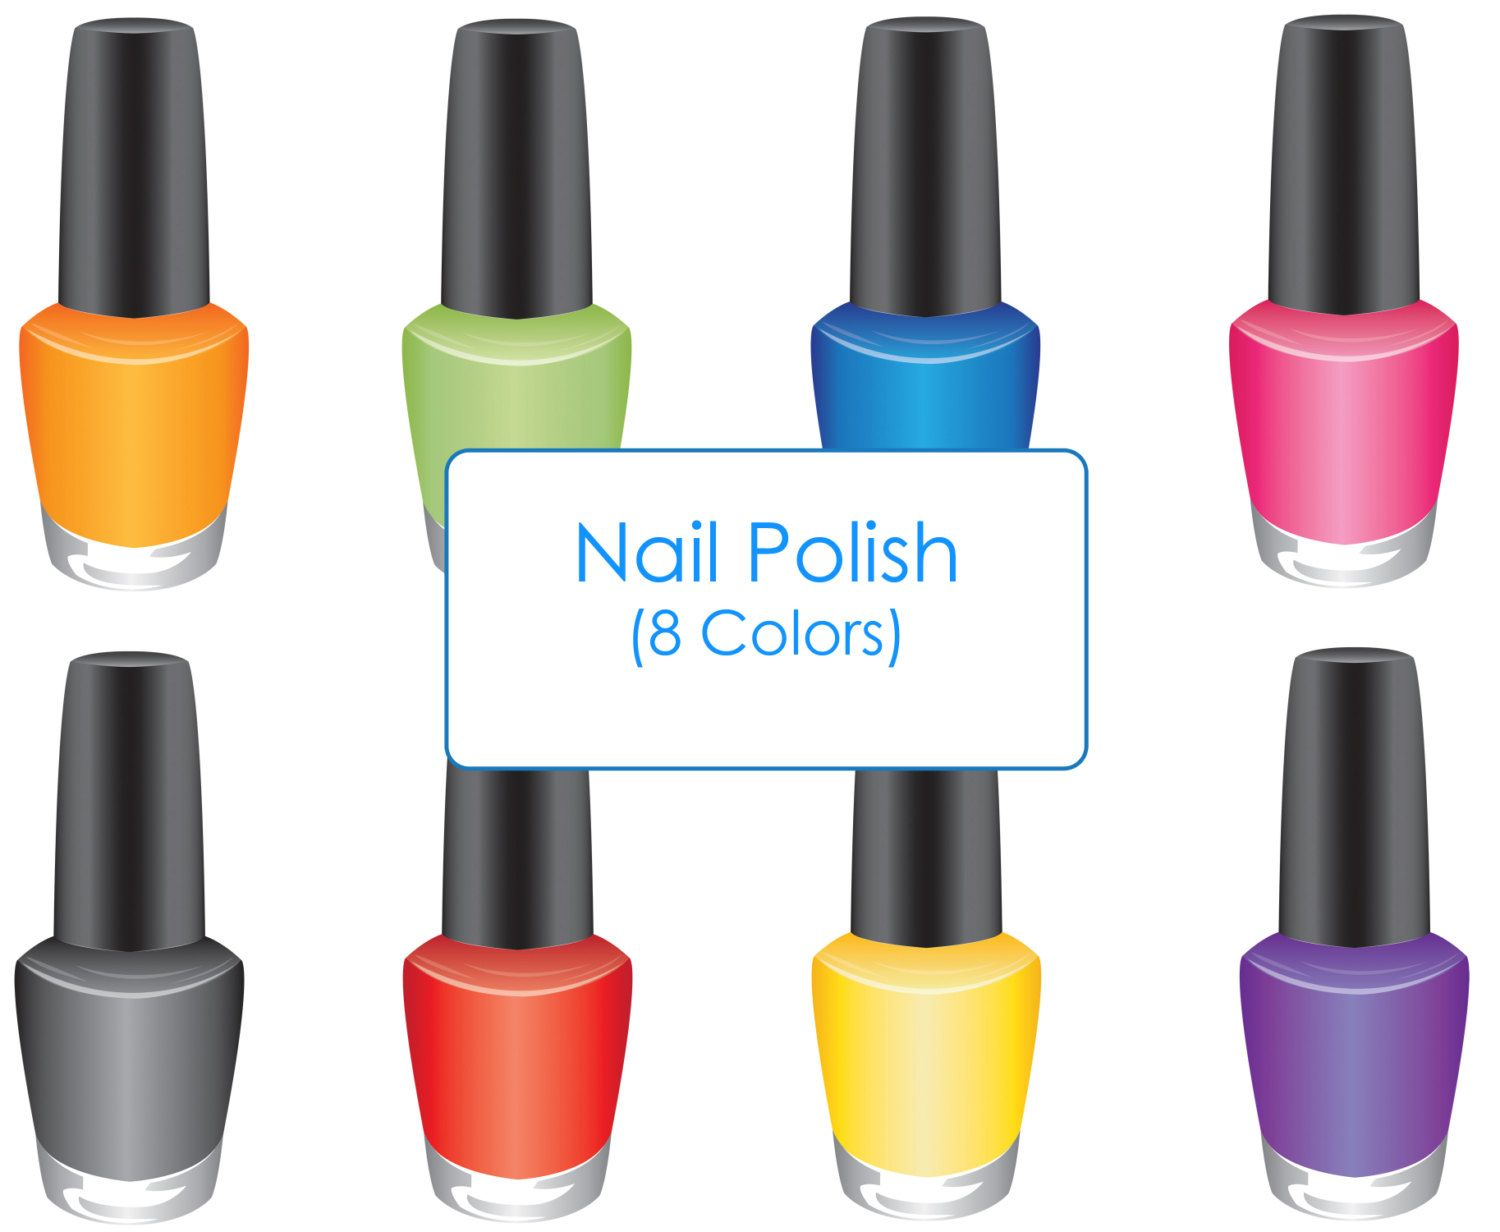 Nails clipart pedicure. Images google search spa